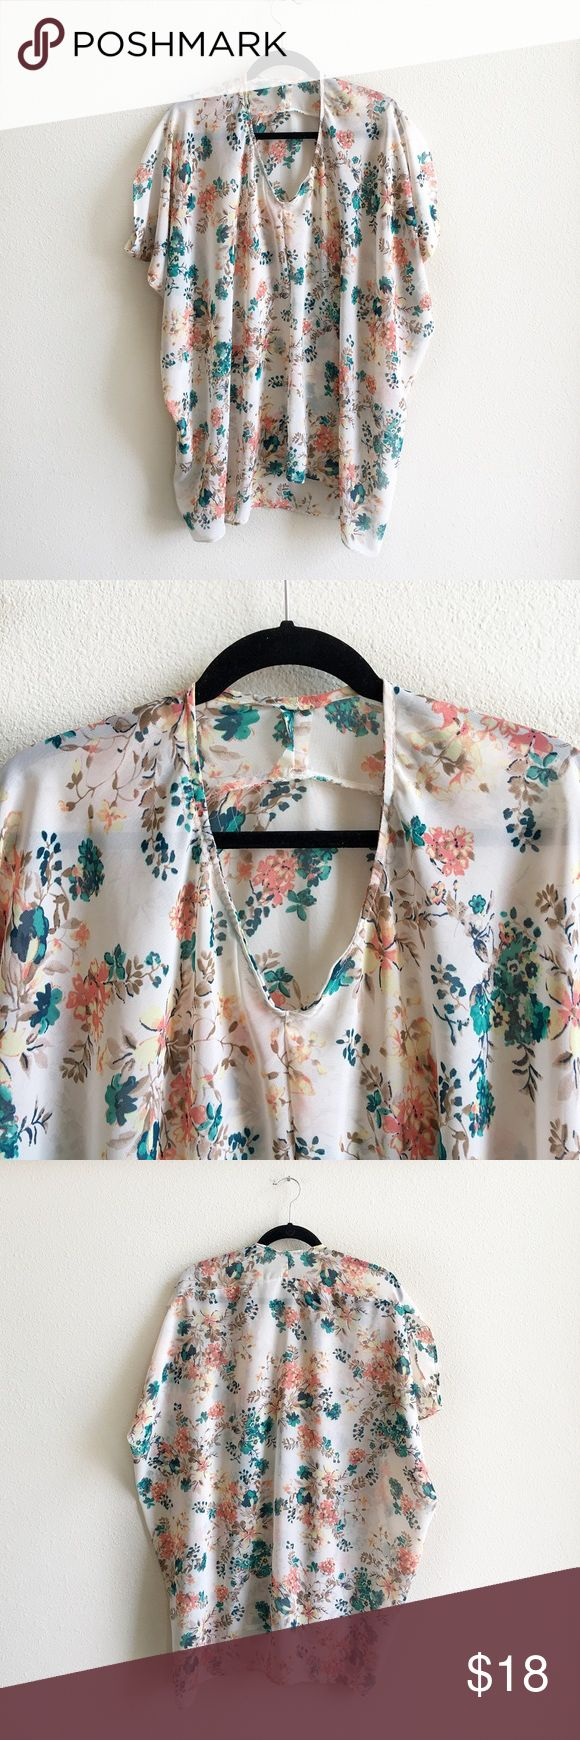 """💥New Listing! Flowy Floral Top Gorgeous semi sheer floral print • handmade with some minor flaws- like the neckline is a bit bubbly (2nd picture) but it isn't noticeable when worn • batwing sleeves • versatile top can be used as a blouse, swimsuit coverup, etc. • bust is 32"""" flat and is 35.5"""" long • can work for a variety of sizes Tops"""